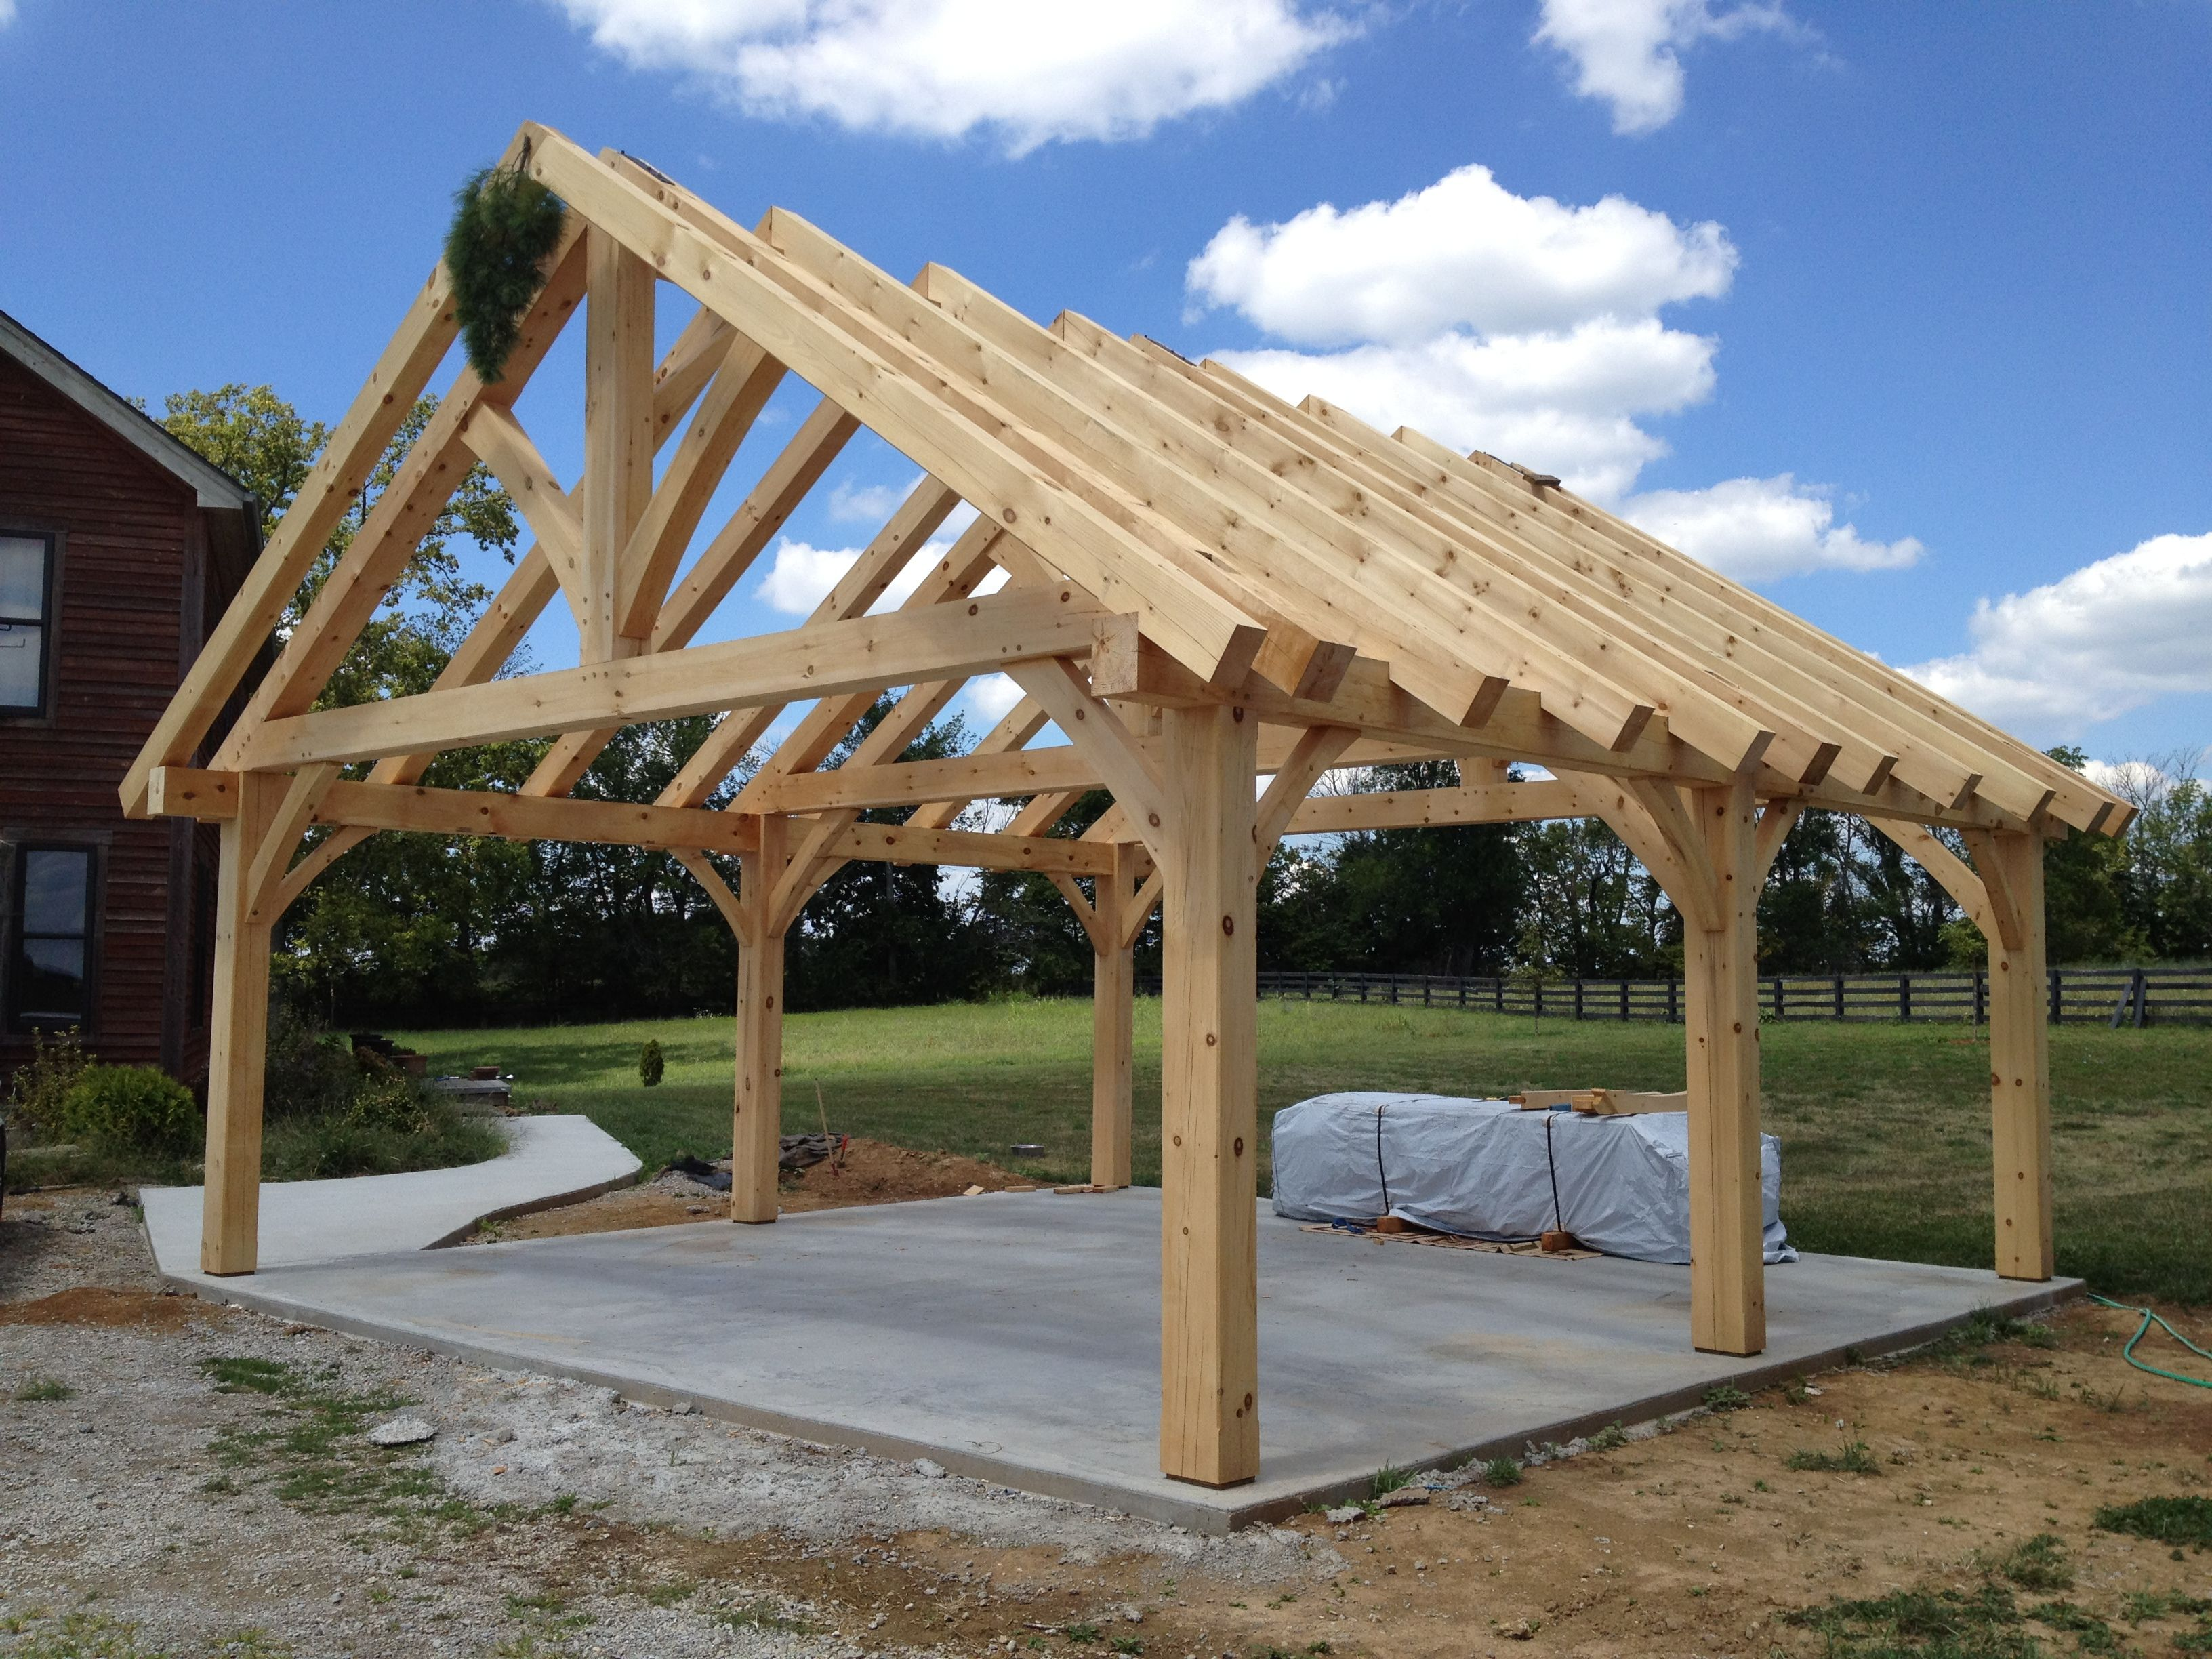 Kingpost Trusses Timberframe Backyard Pavilion Timber Frame Construction Pavilion Plans